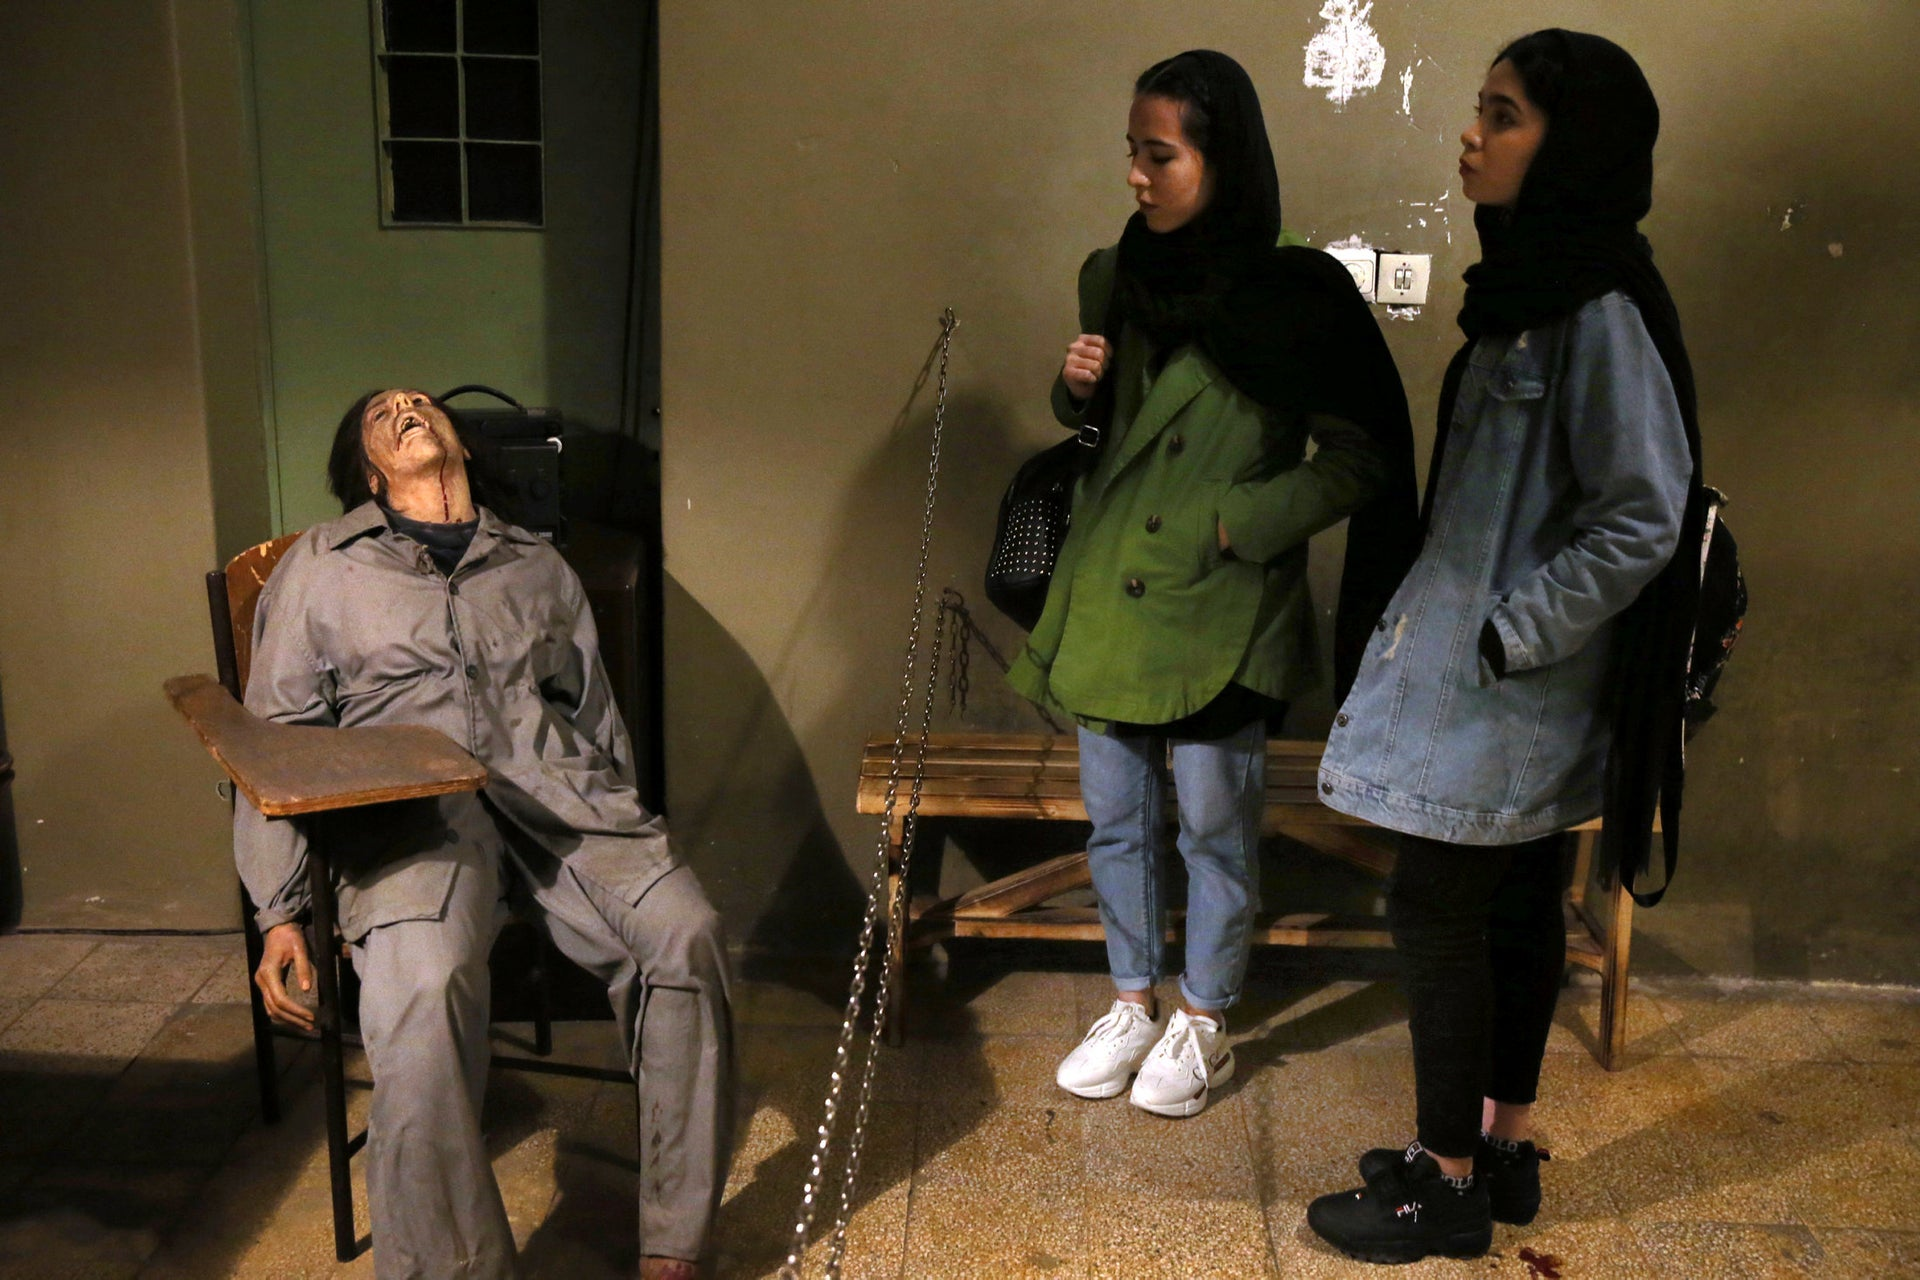 Women look at an exhibition at a former SAVAK prison, where a wax mannequin of a tortured female prisoner is on display, in Tehran, Iran, January 7, 2019.